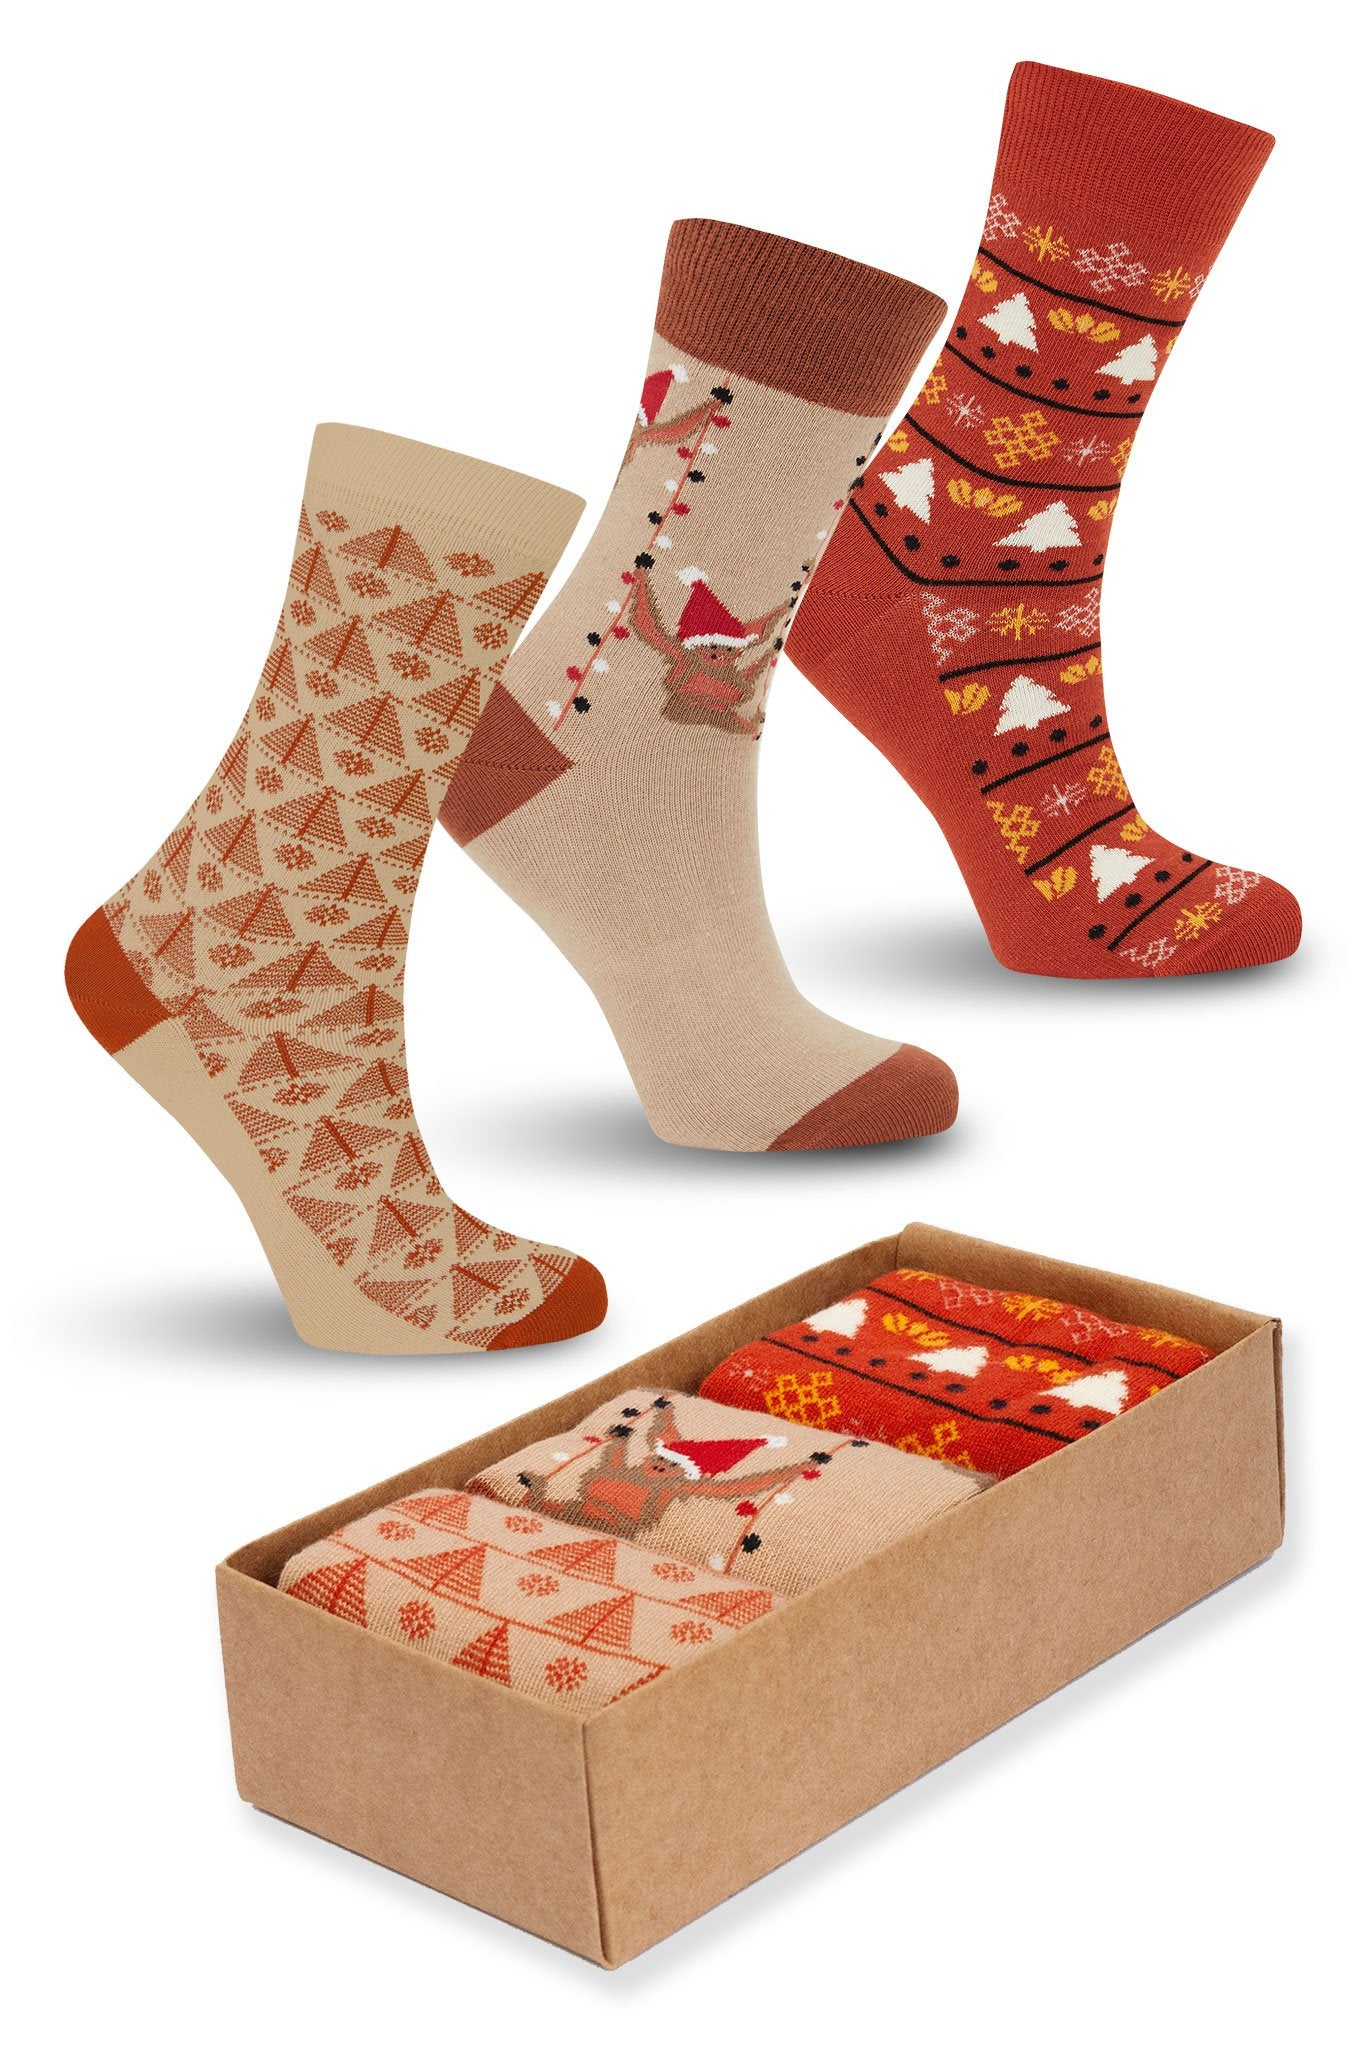 XMAS FUN Box Assorted - GOTS Organic Cotton Socks Set